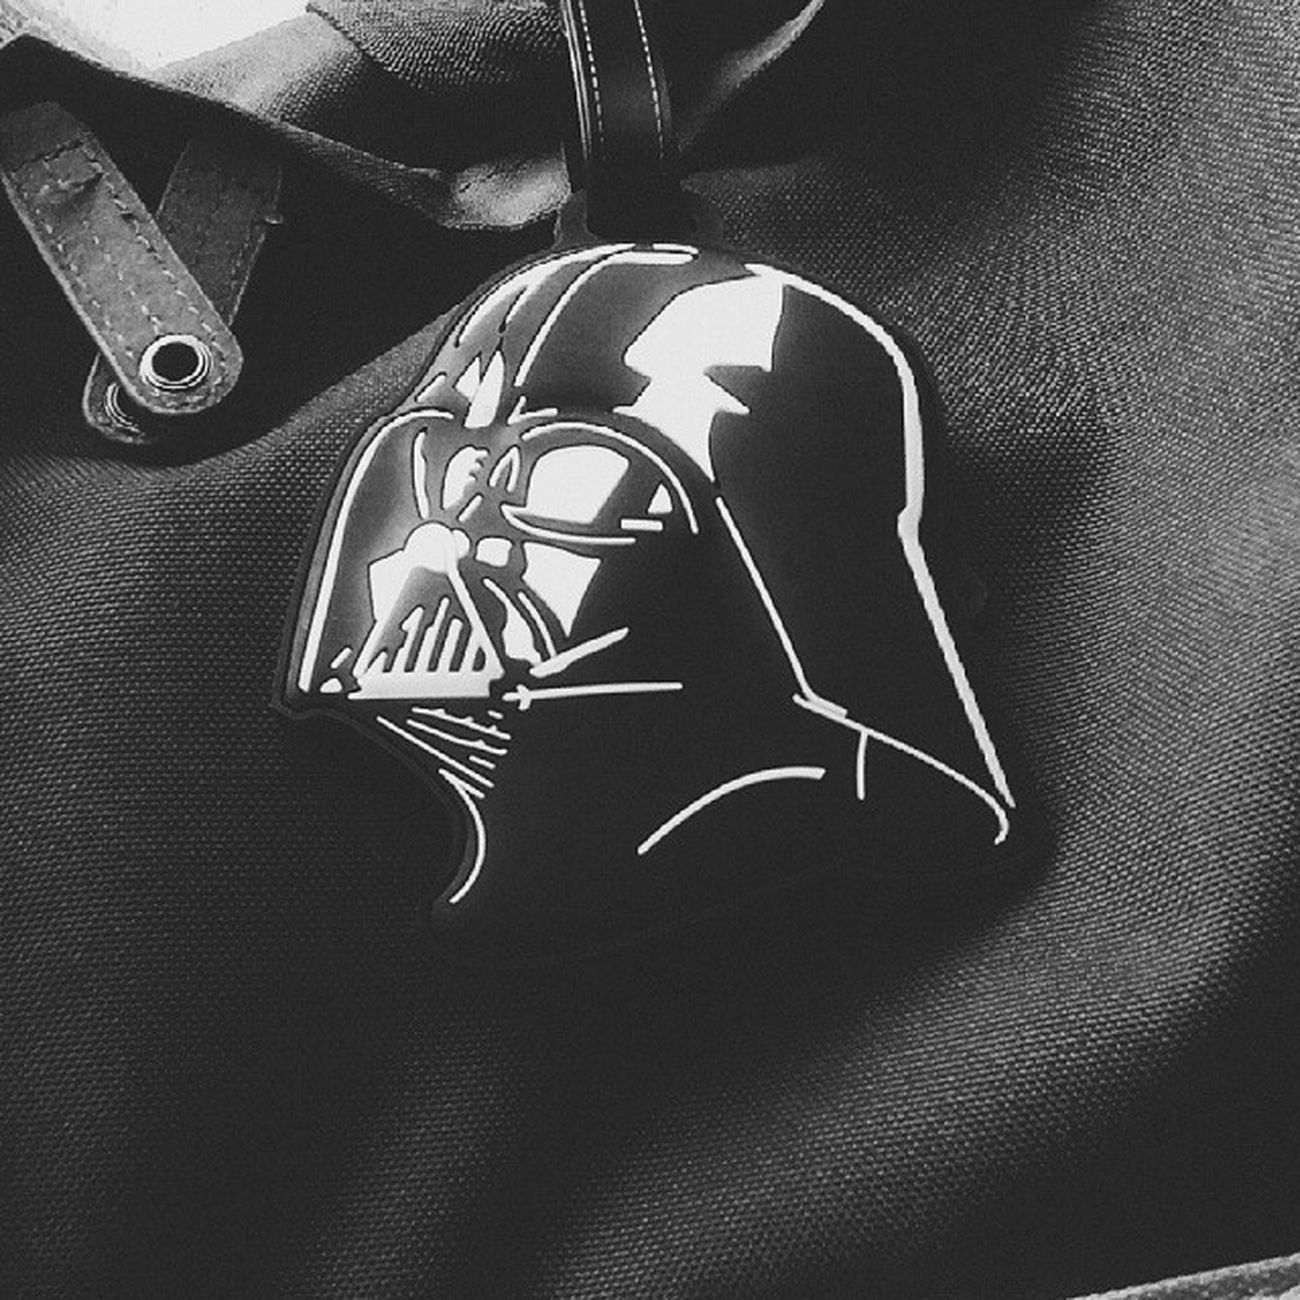 the force is strong in my bag. Maytheforcebewithmeforcollege Star Wars Darth Vader B&w